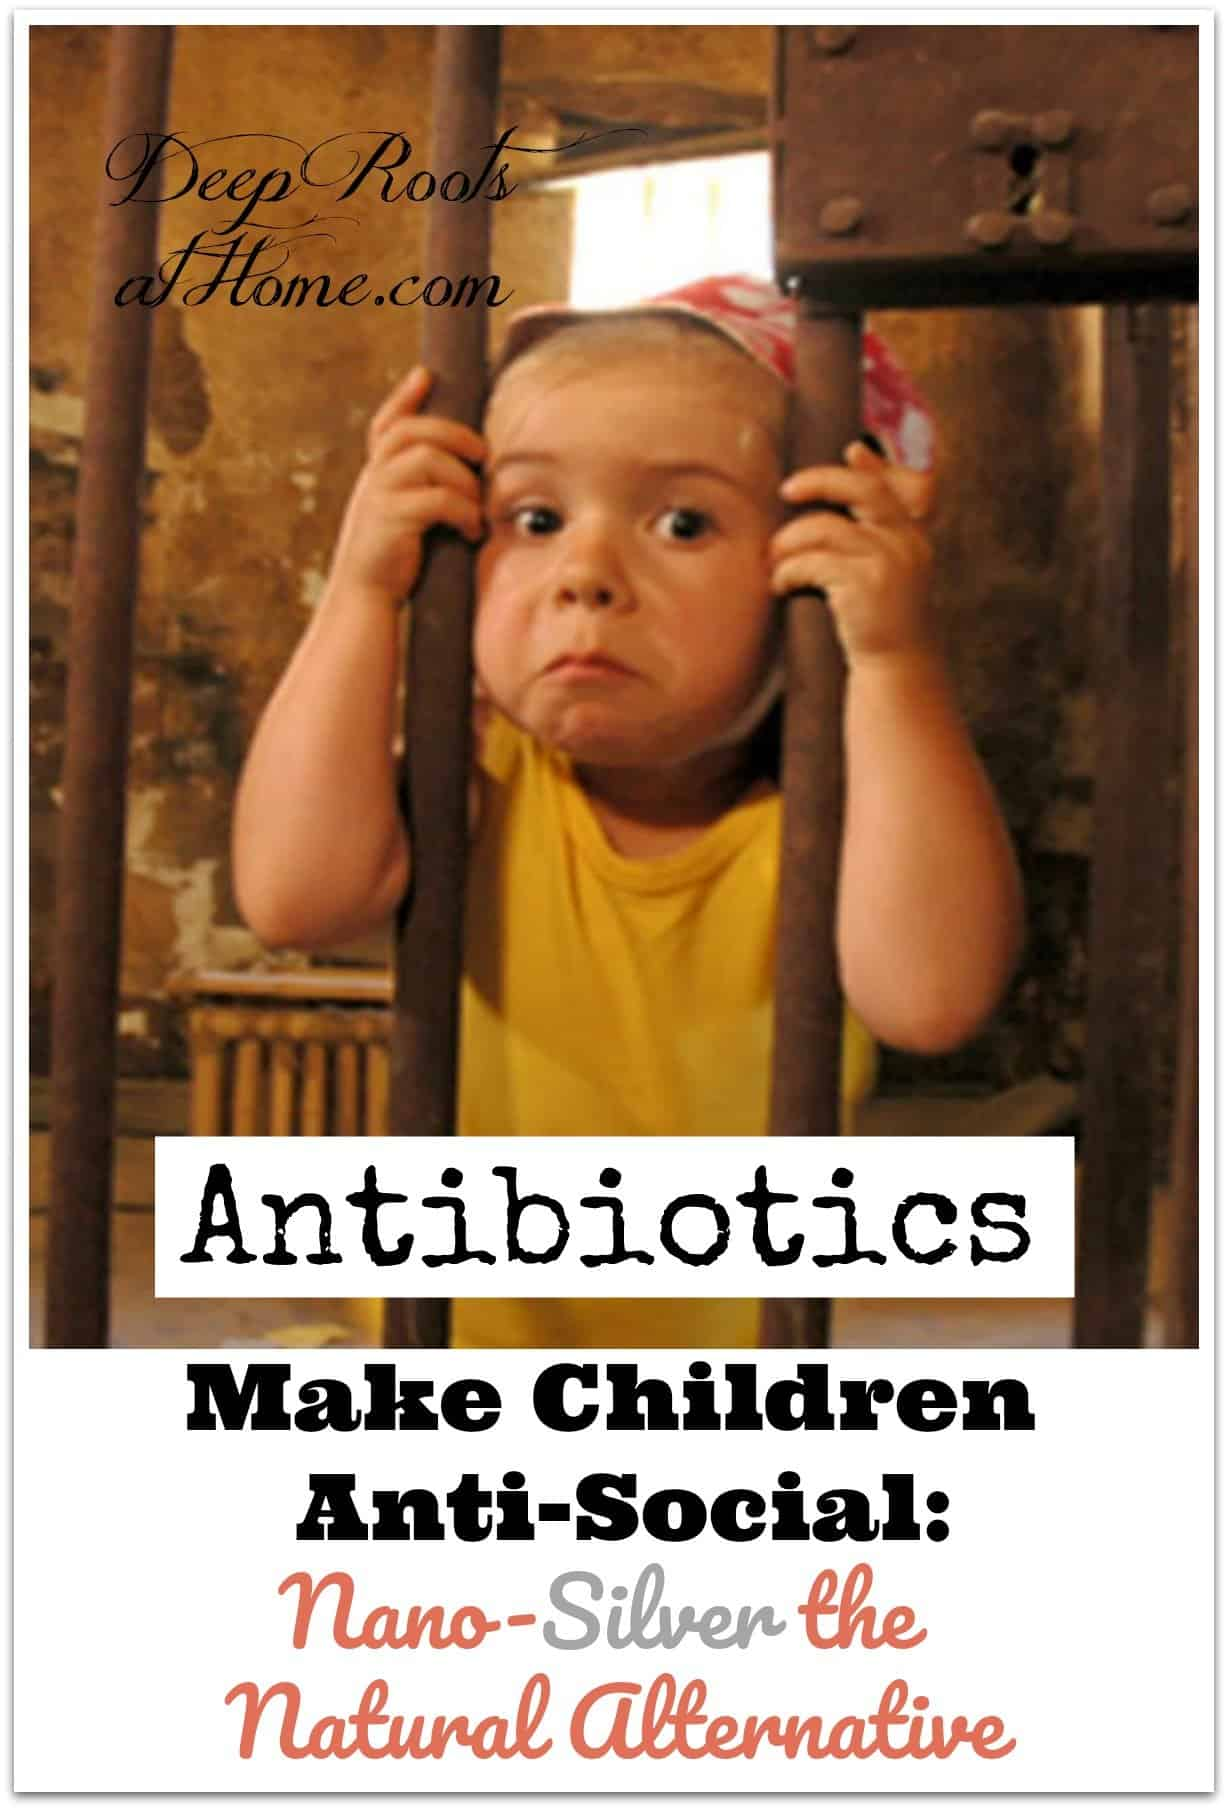 Antibiotics Annihilate Good Microbes & Create Antisocial Children. A pouting boy behind bars